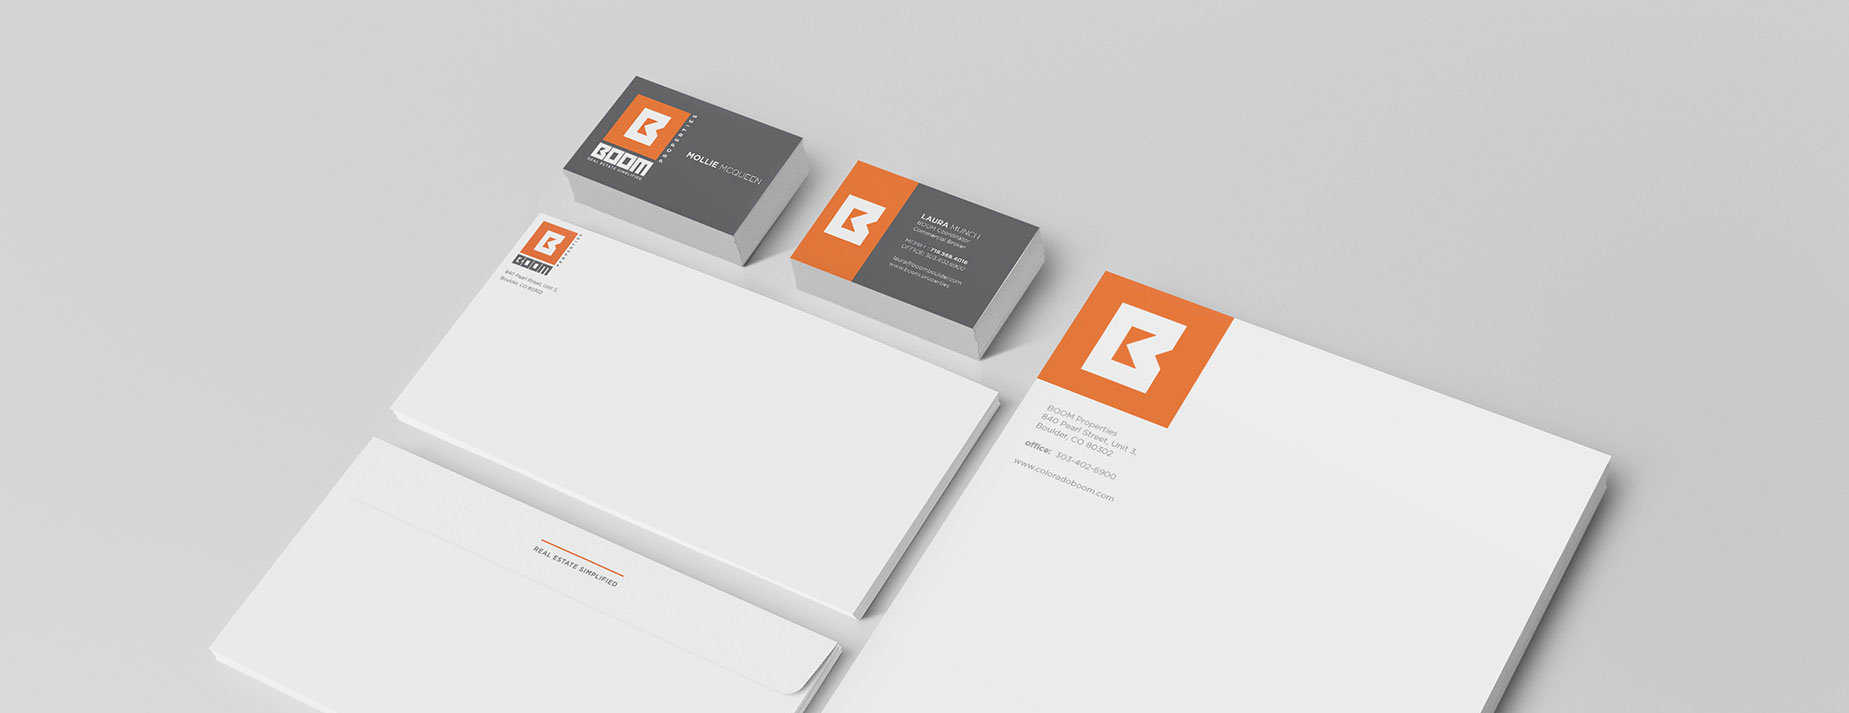 stationery design for boom properties